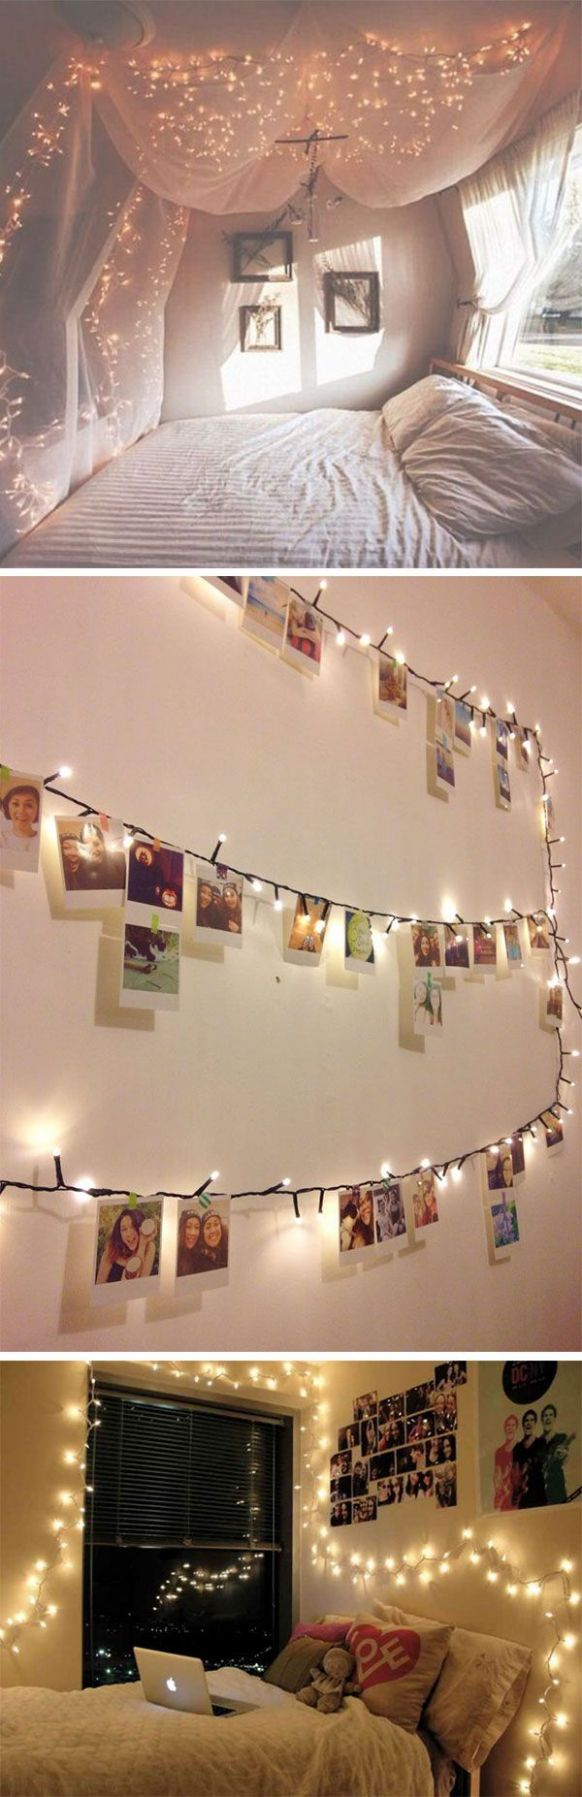 9 ways to use fairy lights and make your bedroom look magical ..